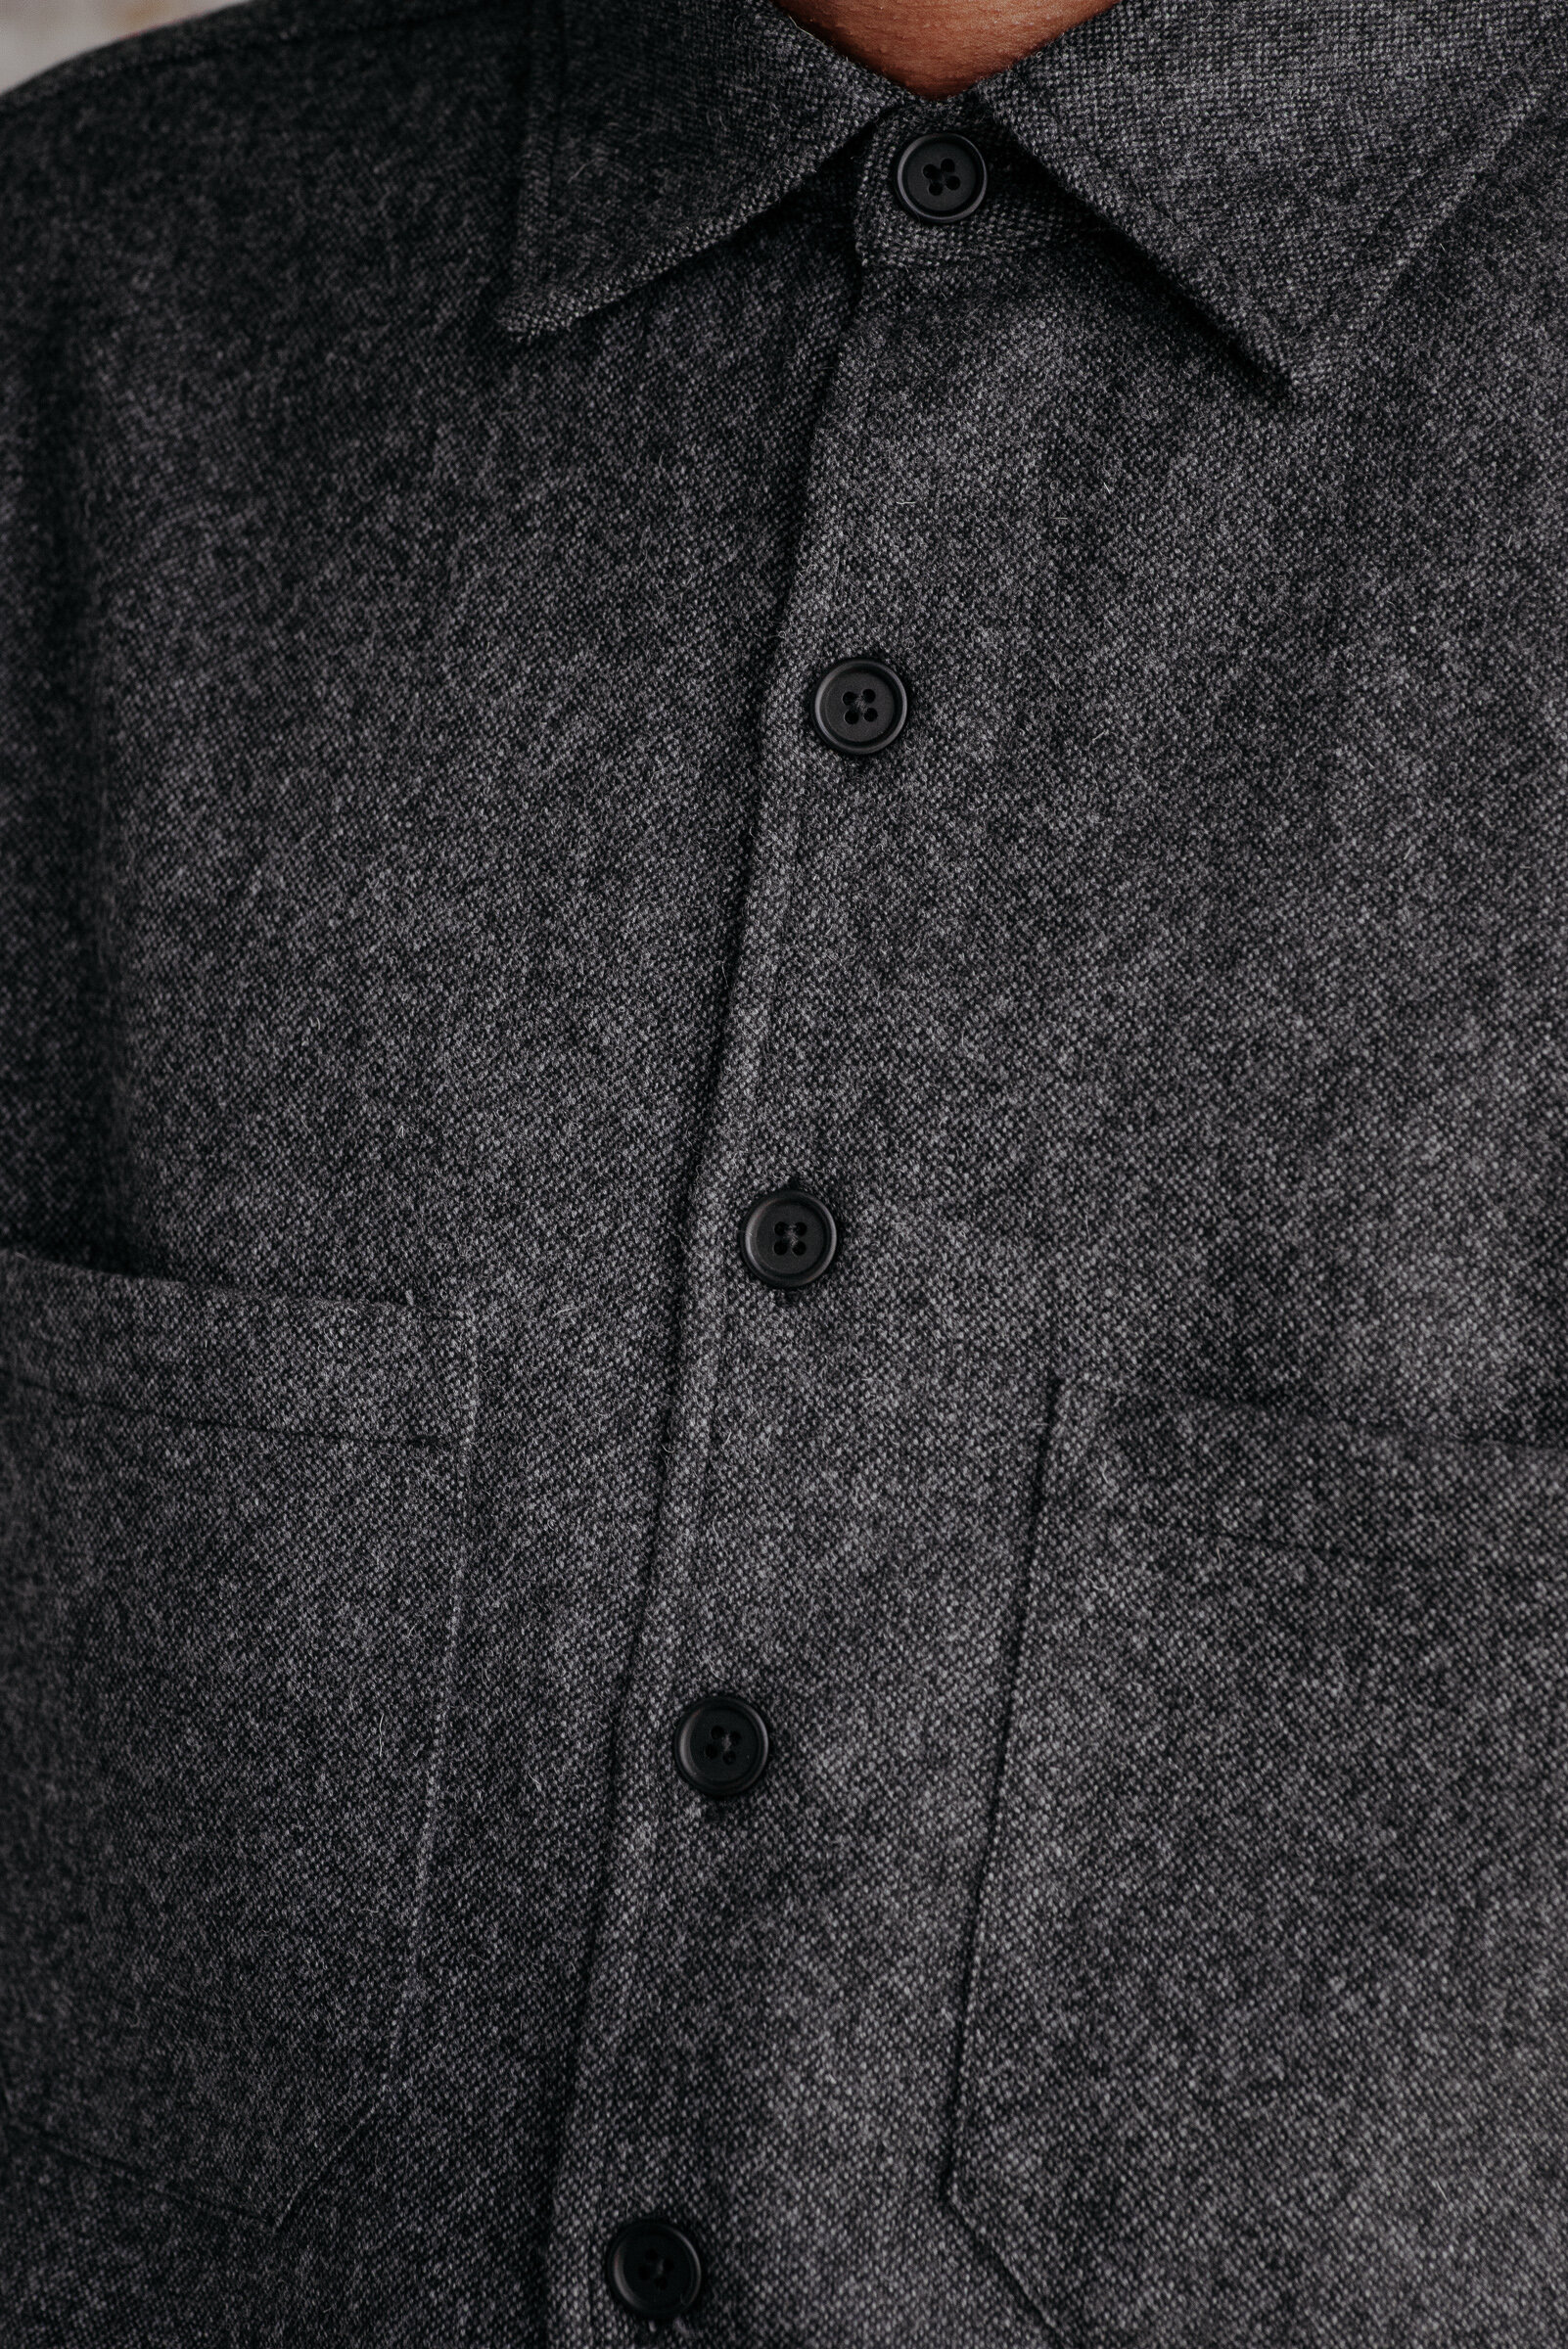 evan-kinori-two-pocket-shirt-lambswool-woven-in-england-made-in-san-francisco-5